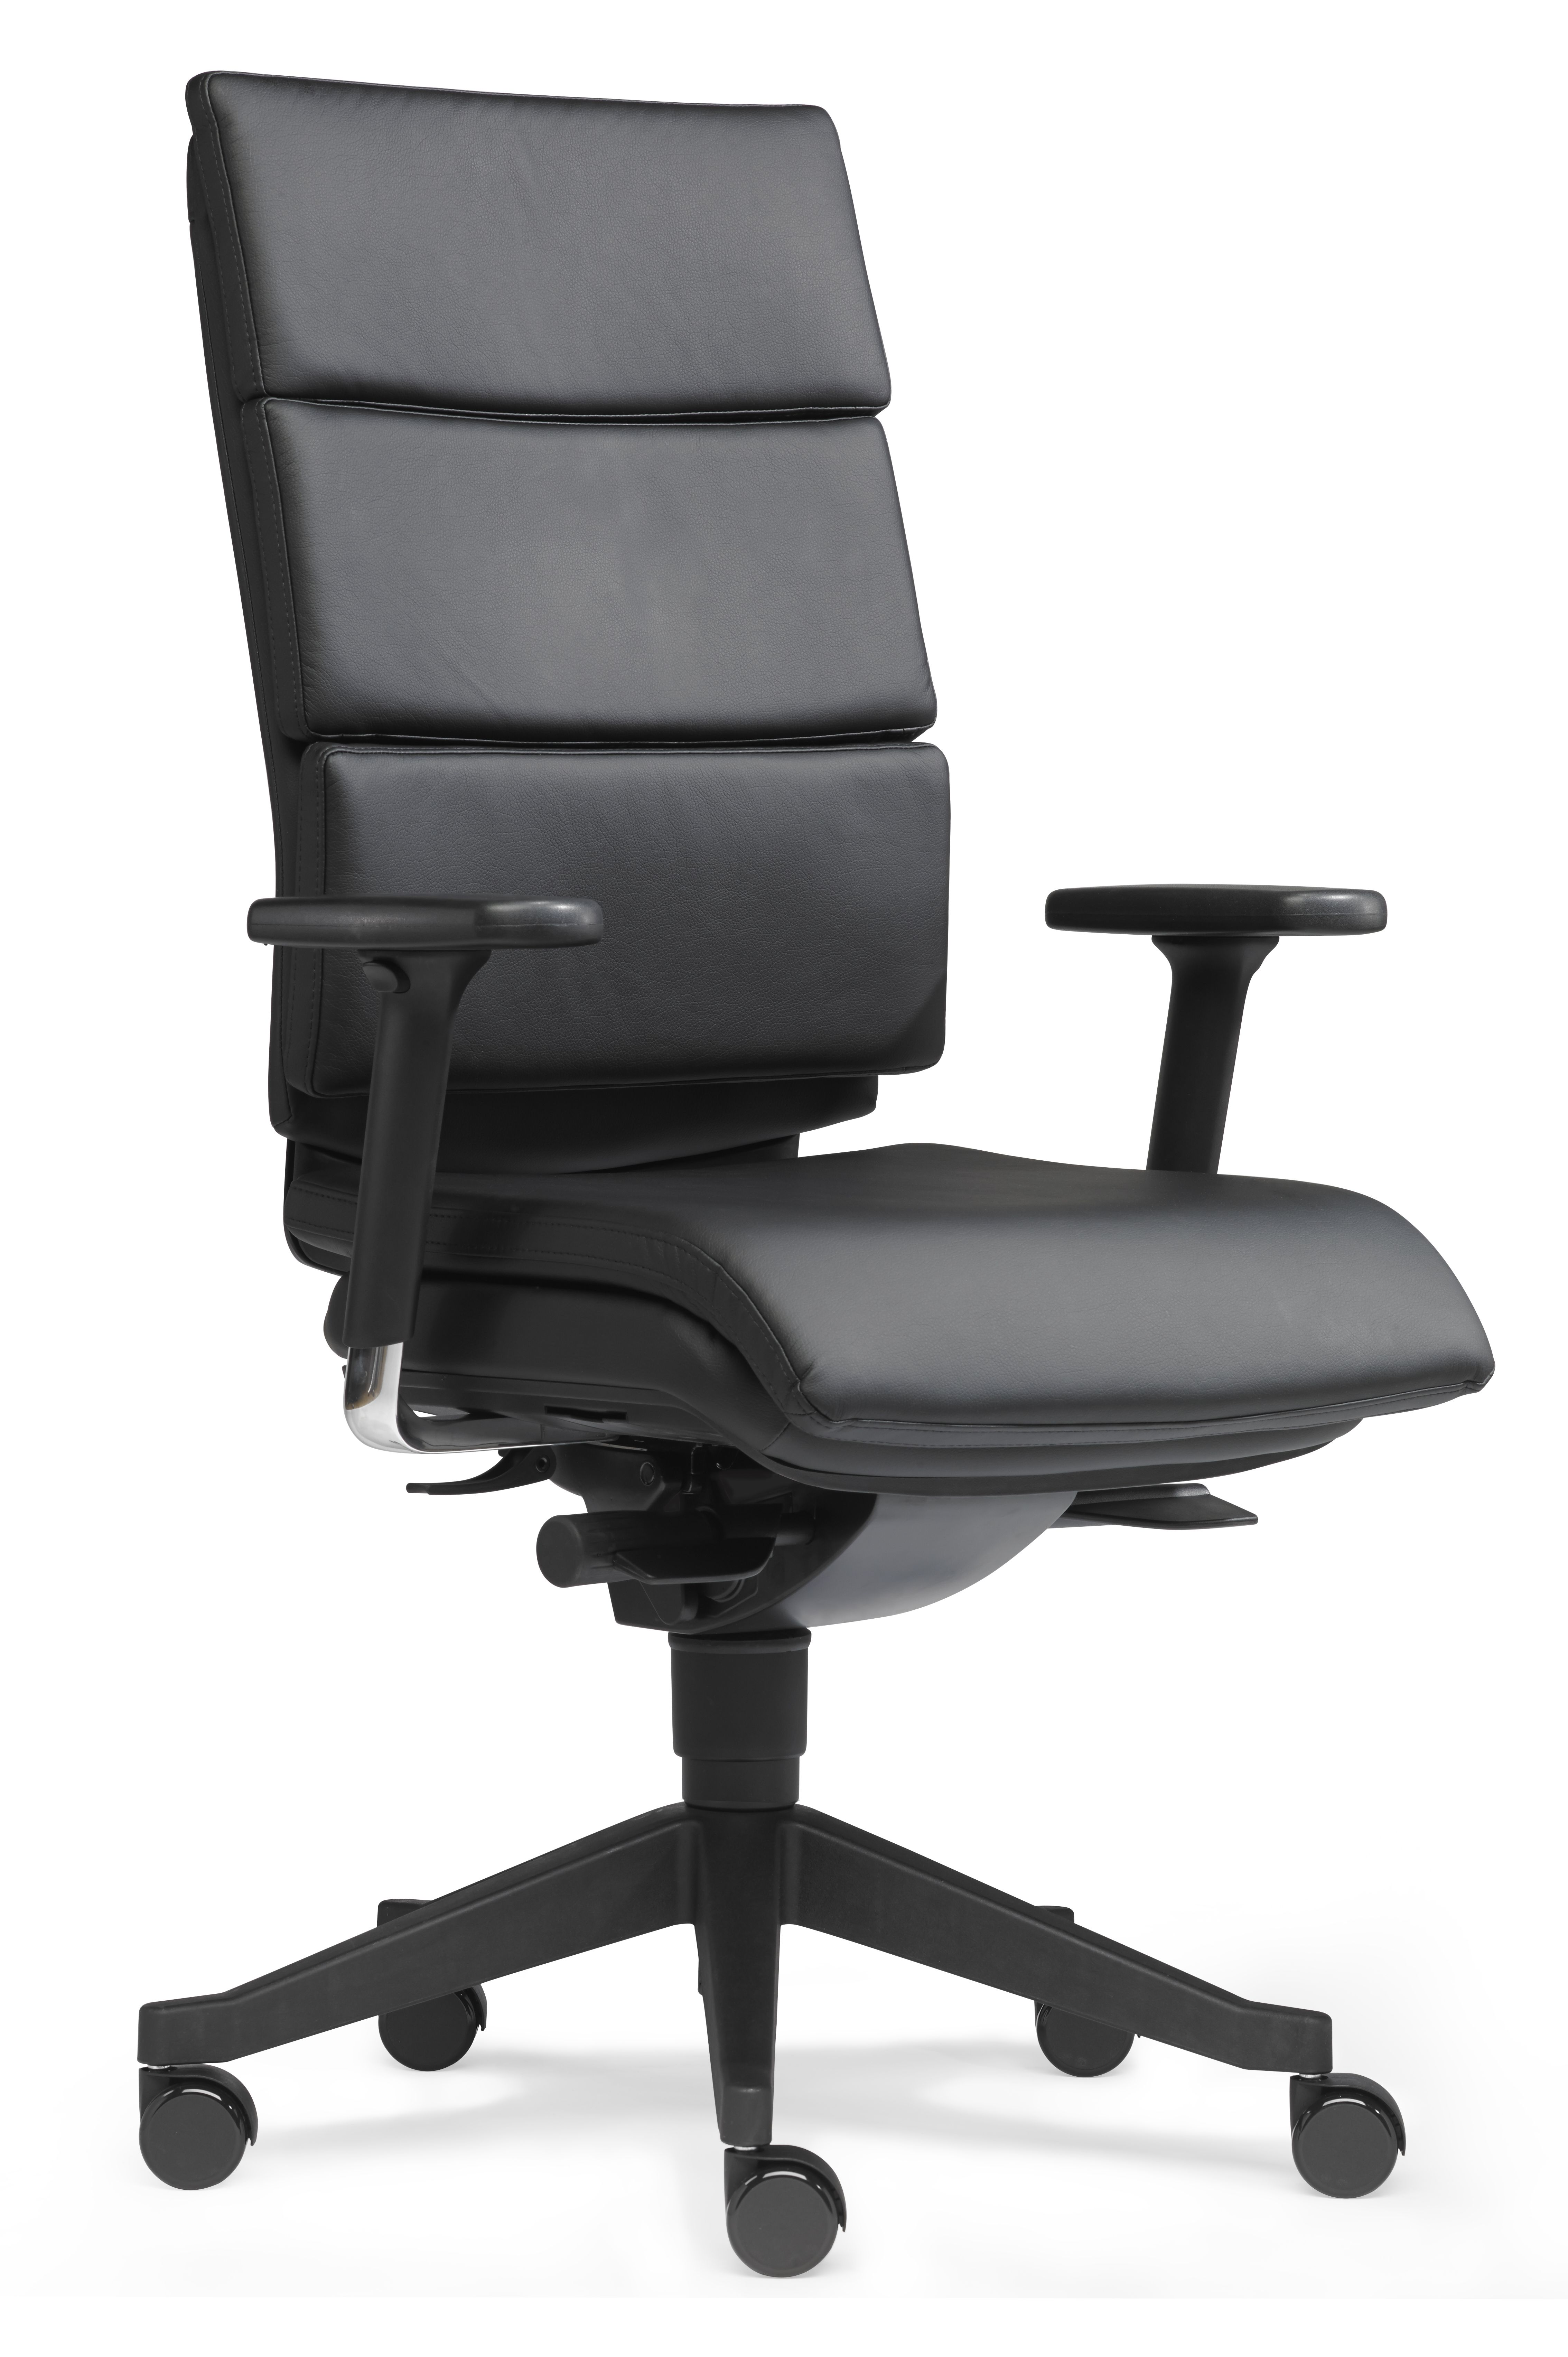 DREAM-OFFICE Drehstuhl Leder schwarz